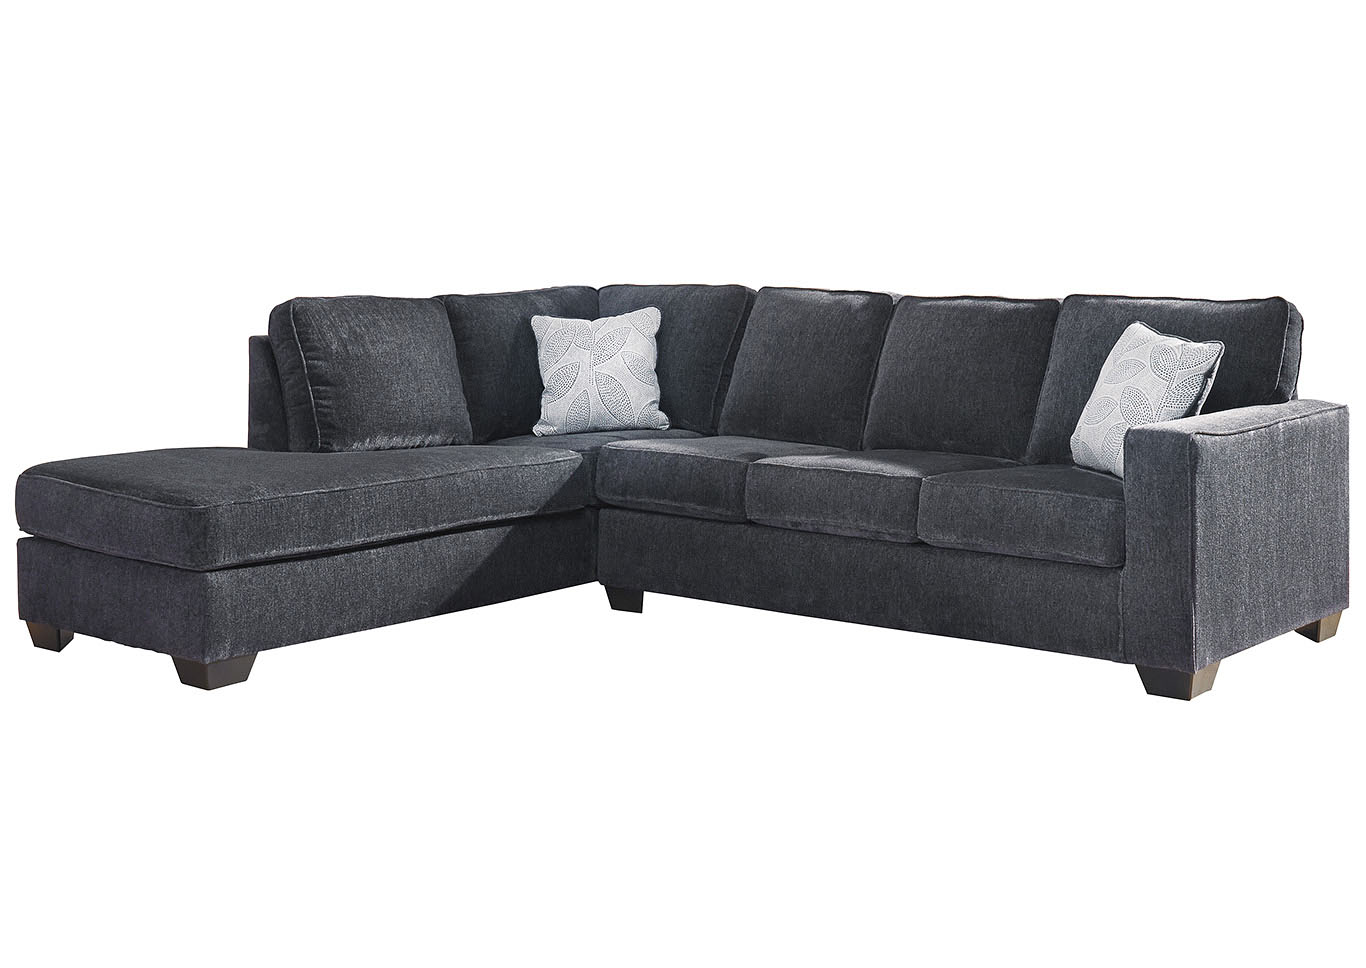 Altari Slate Left-Arm Facing Chaise End Sectional,Signature Design By Ashley